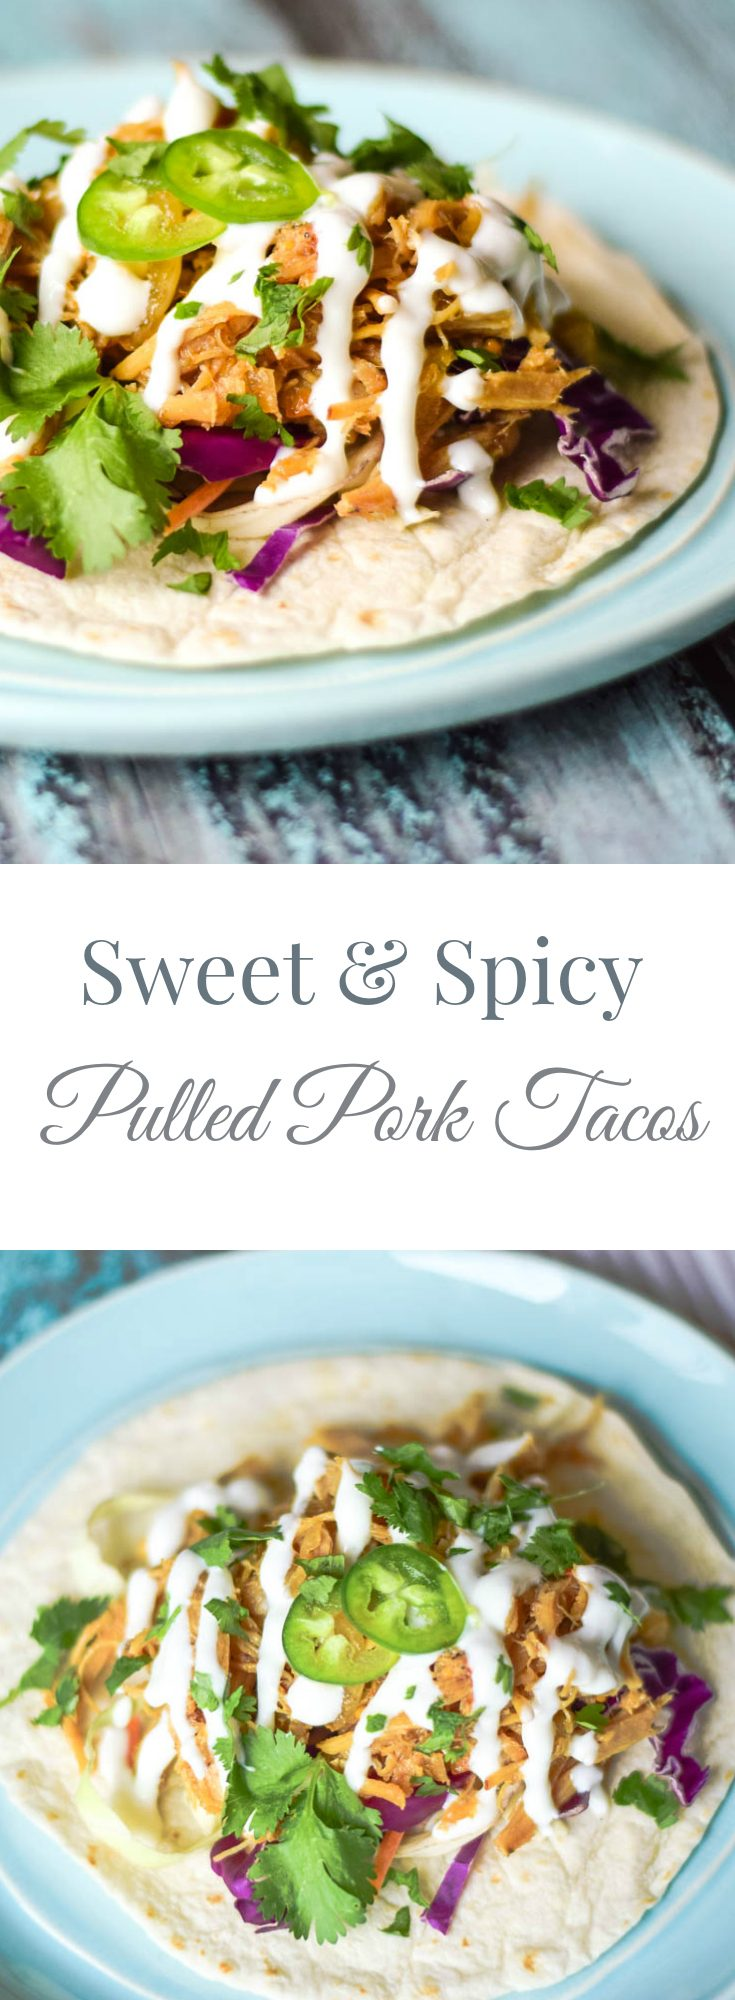 Sweet & Spicy Pulled Pork Tacos #tacos #pork #pulledpork #mexicanrecipe